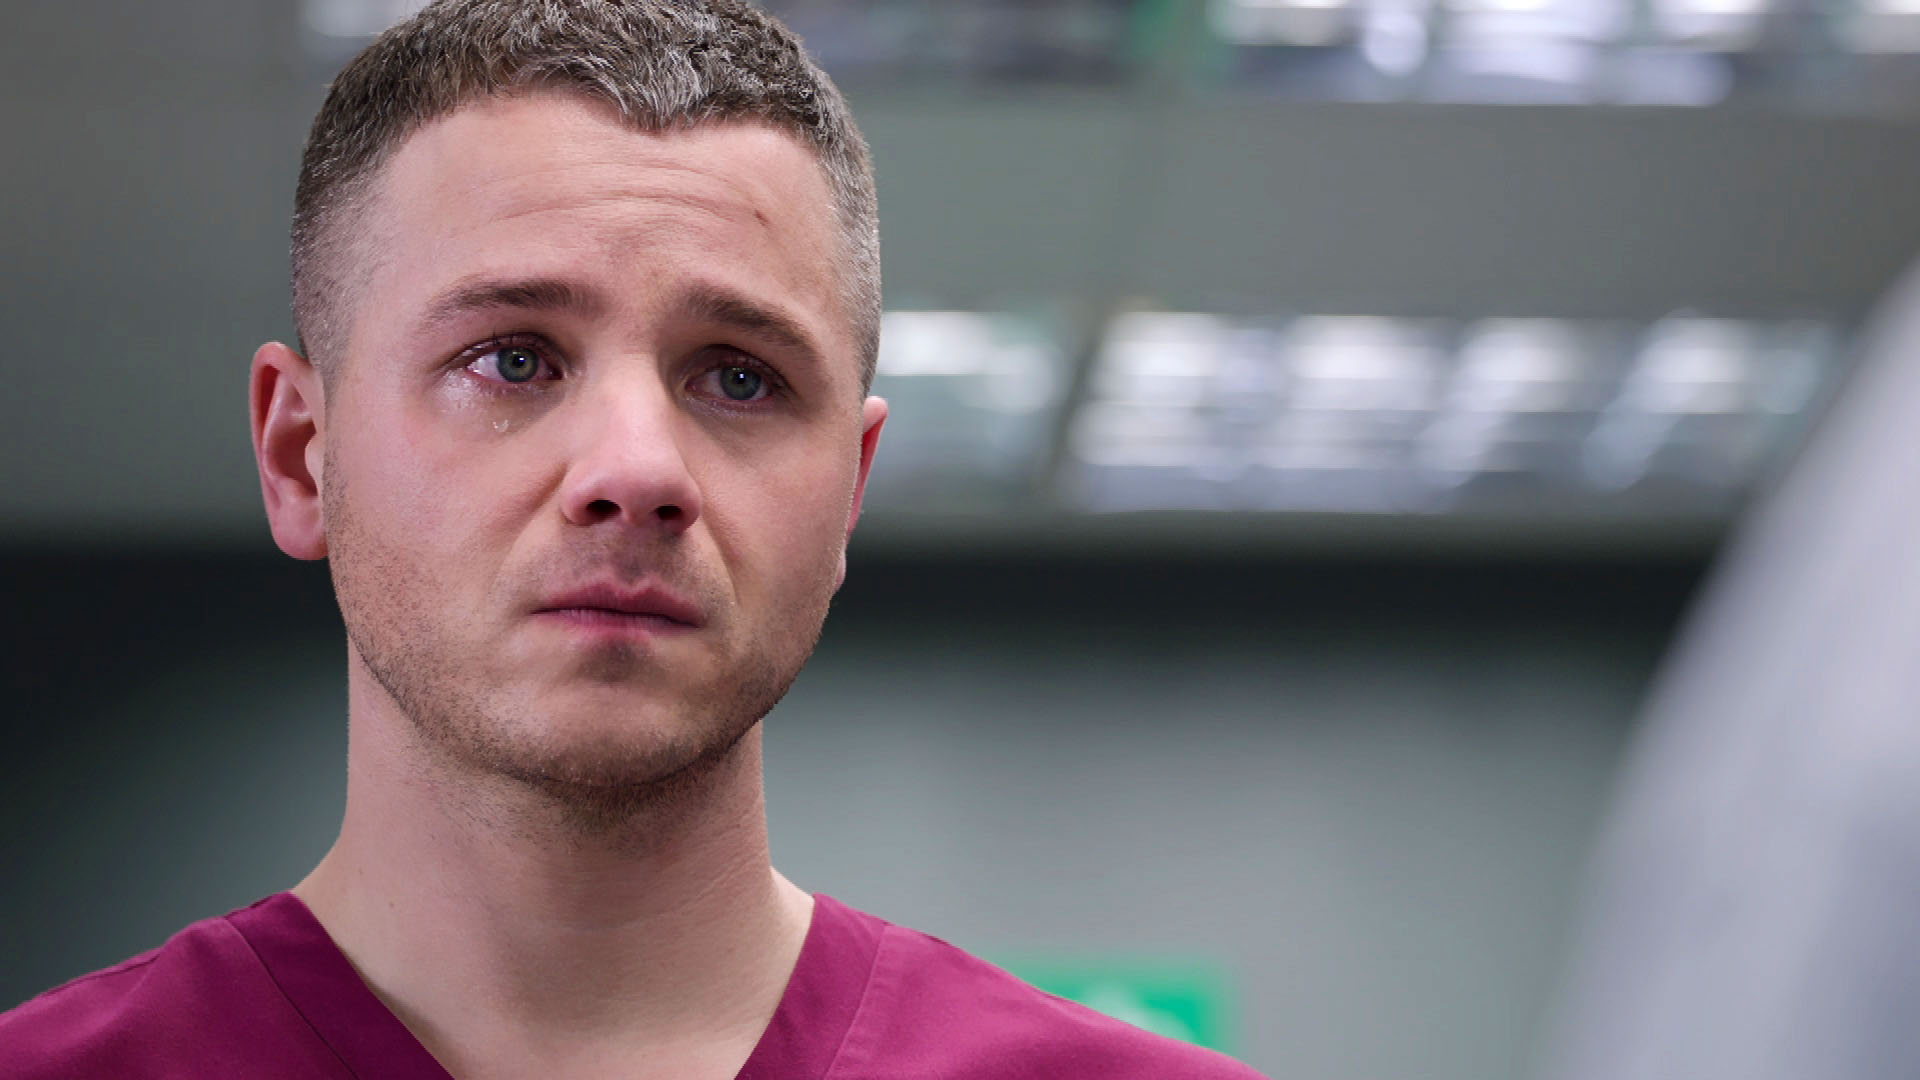 PLA dominic 2 holby city 12